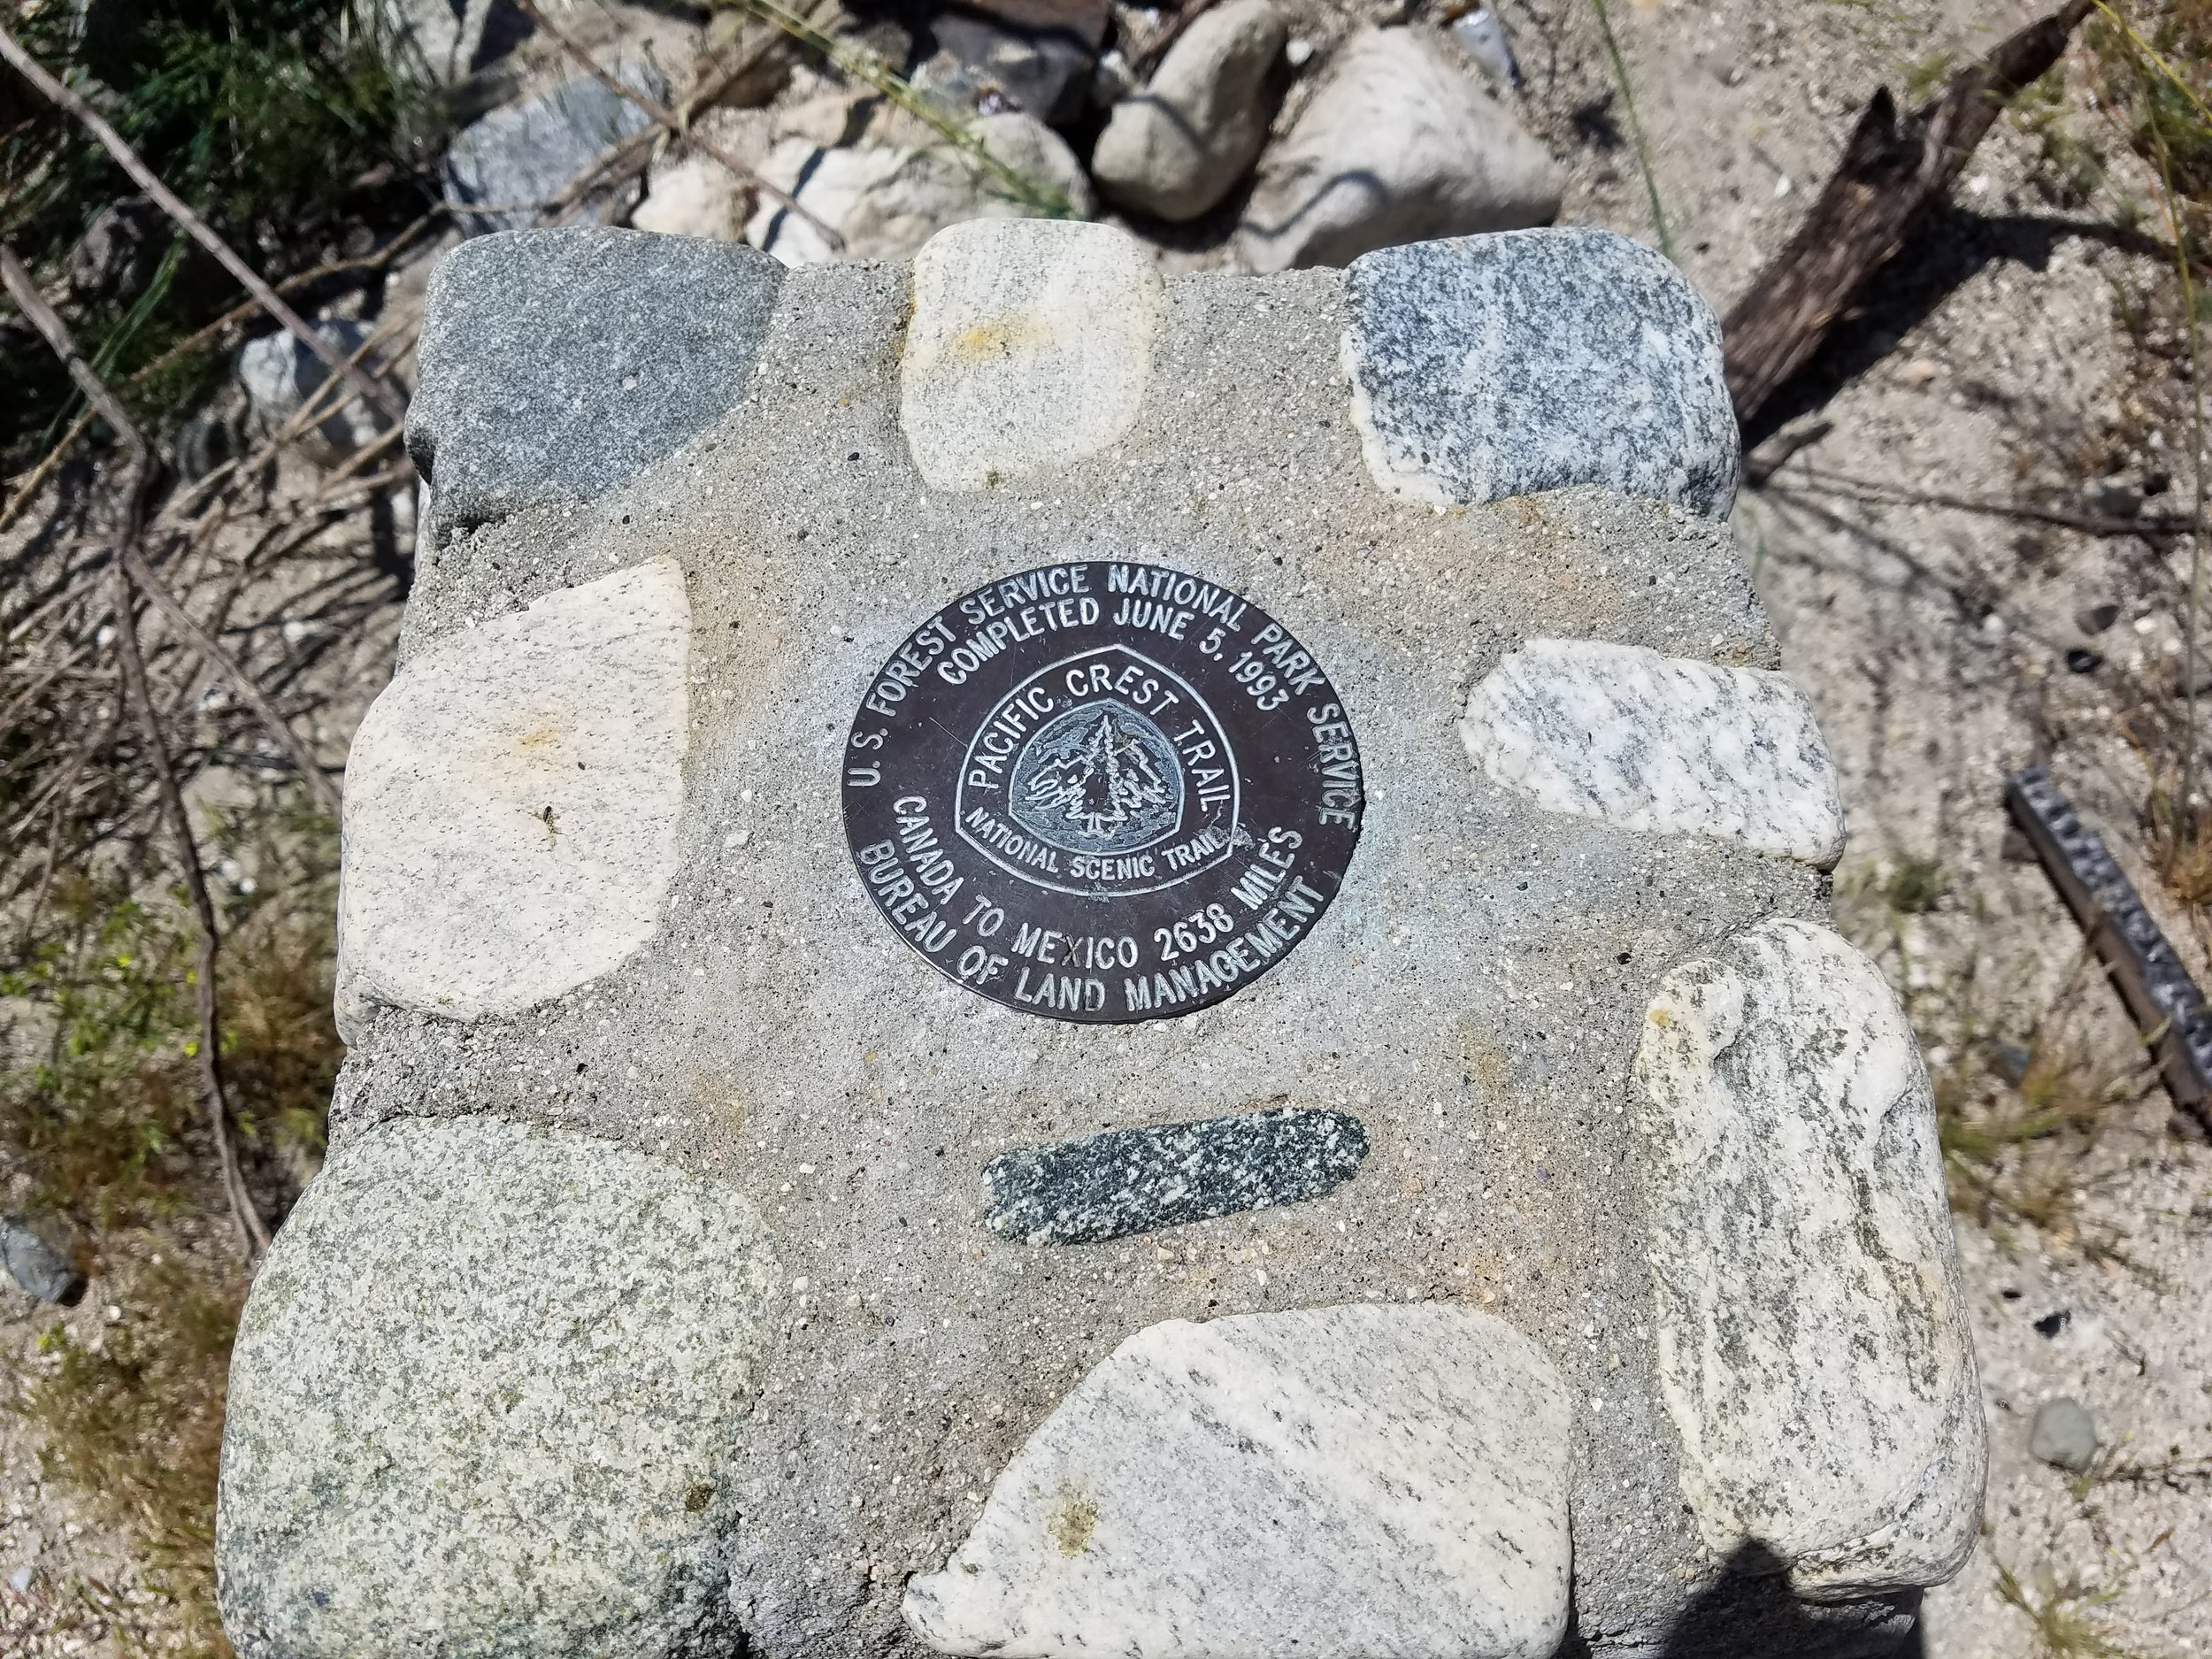 PCT completion monument.